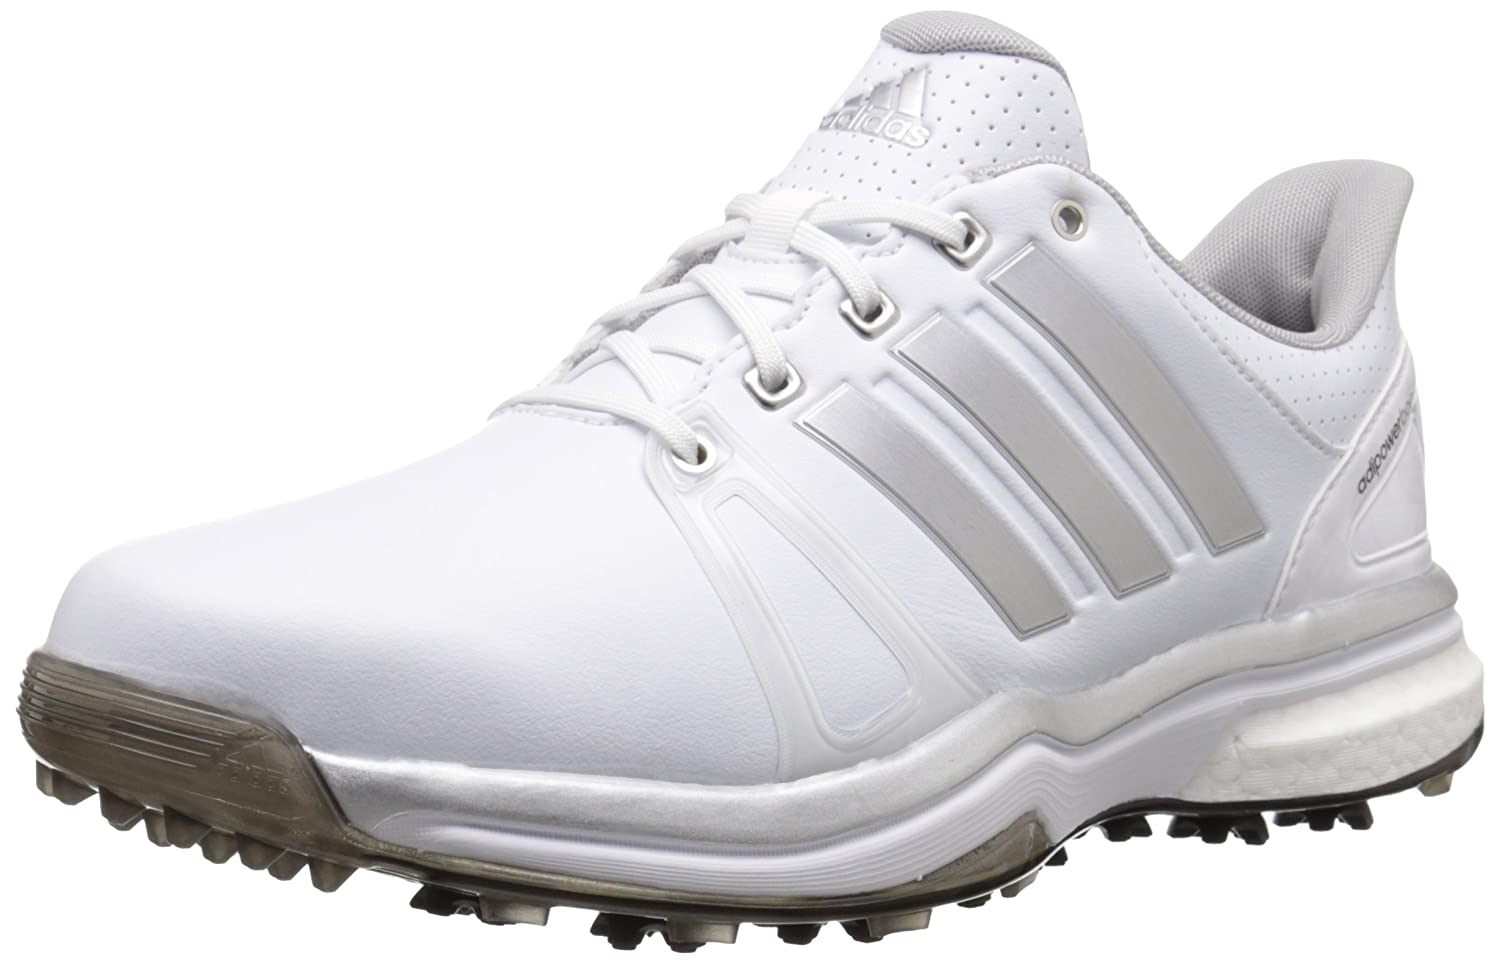 adidas Men's Adipower Boost 2 Golf Cleated B013UHS68W 8 D(M) US|Ftwr White/Silver Metallic/Core Black